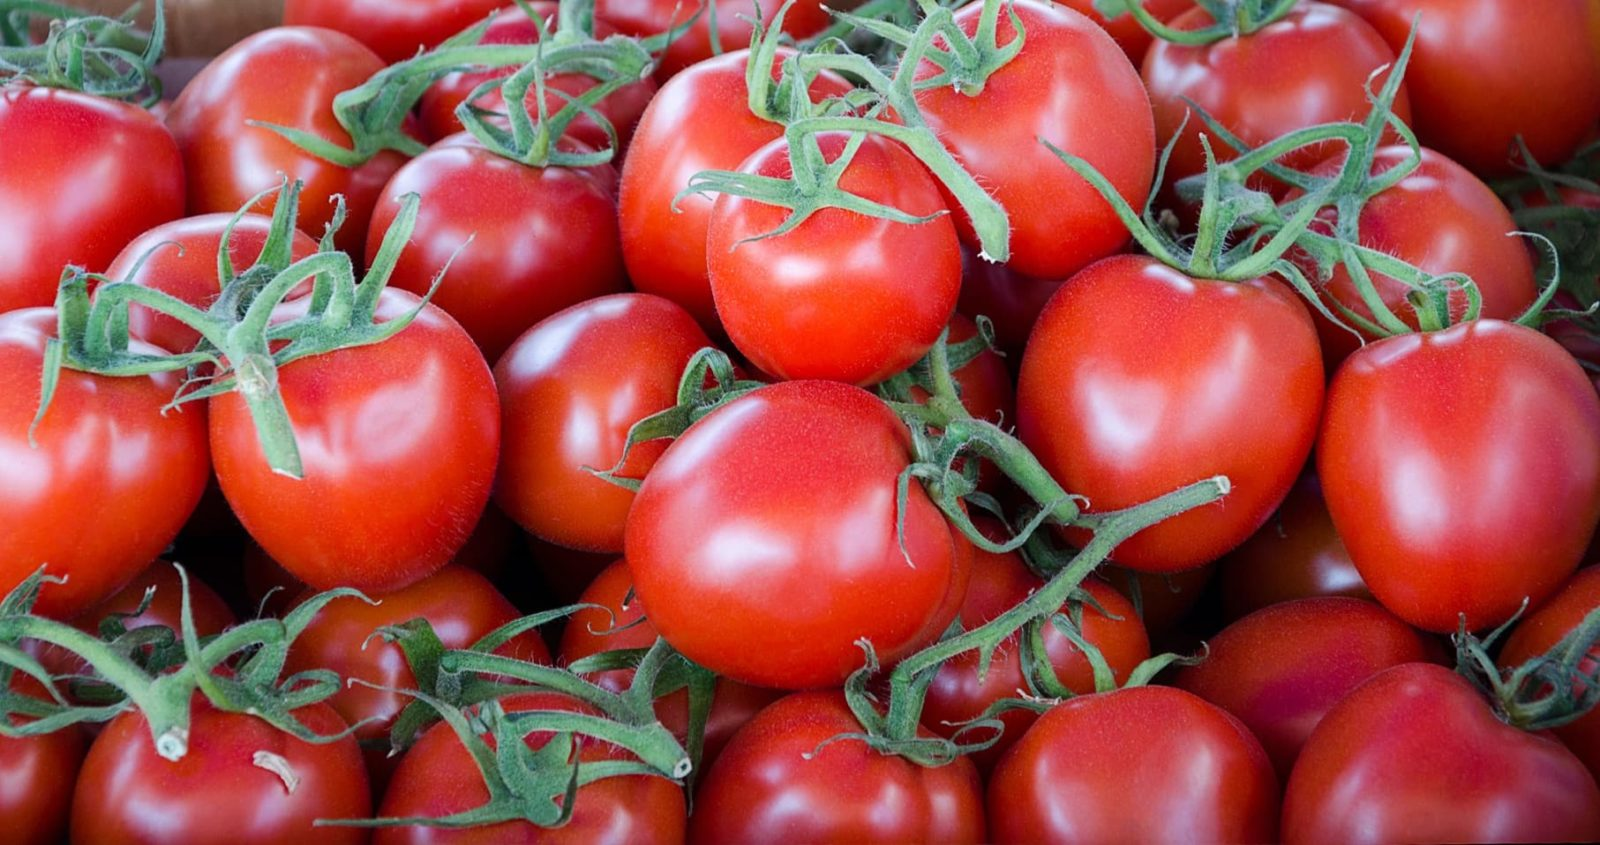 bunches of gardeners delight tomatoes